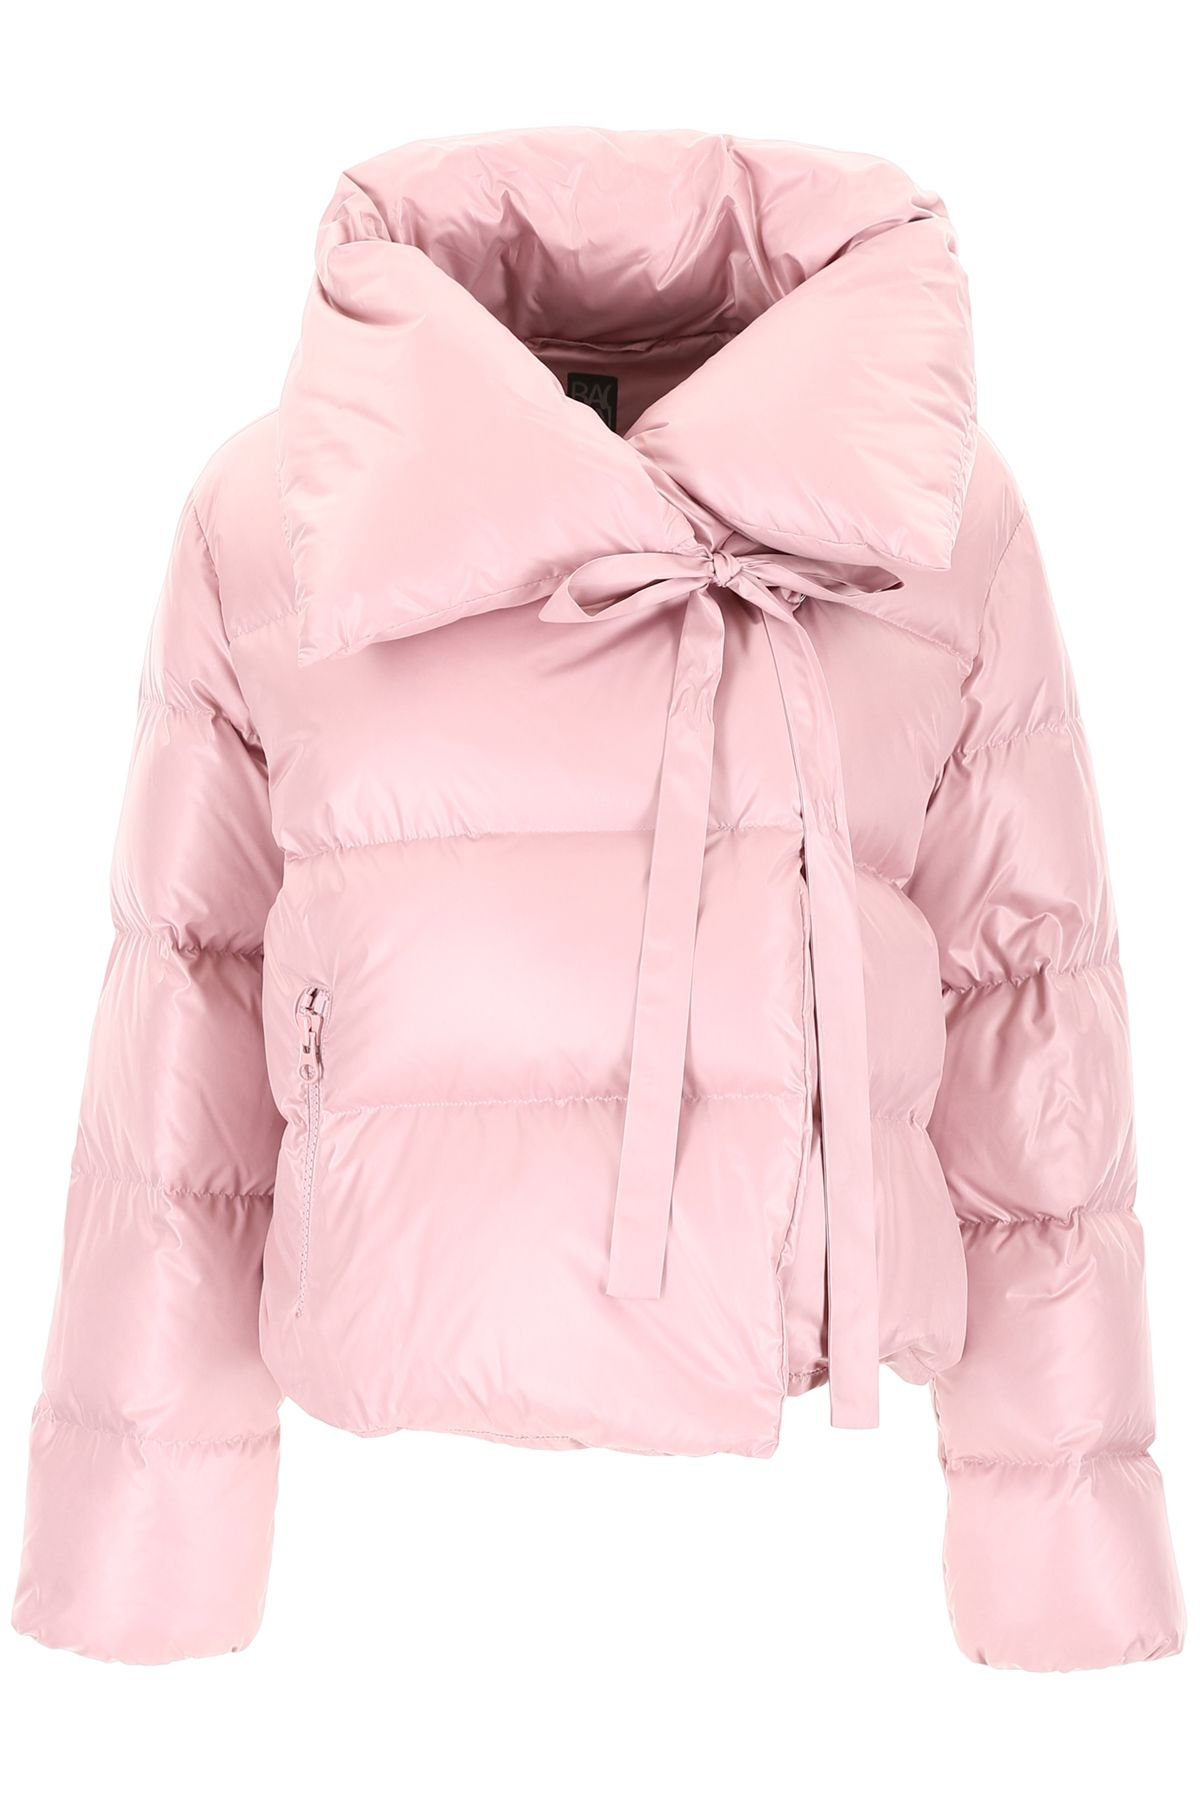 BACON CLOTHING Puffer Jacket With Bow in Antic Pink